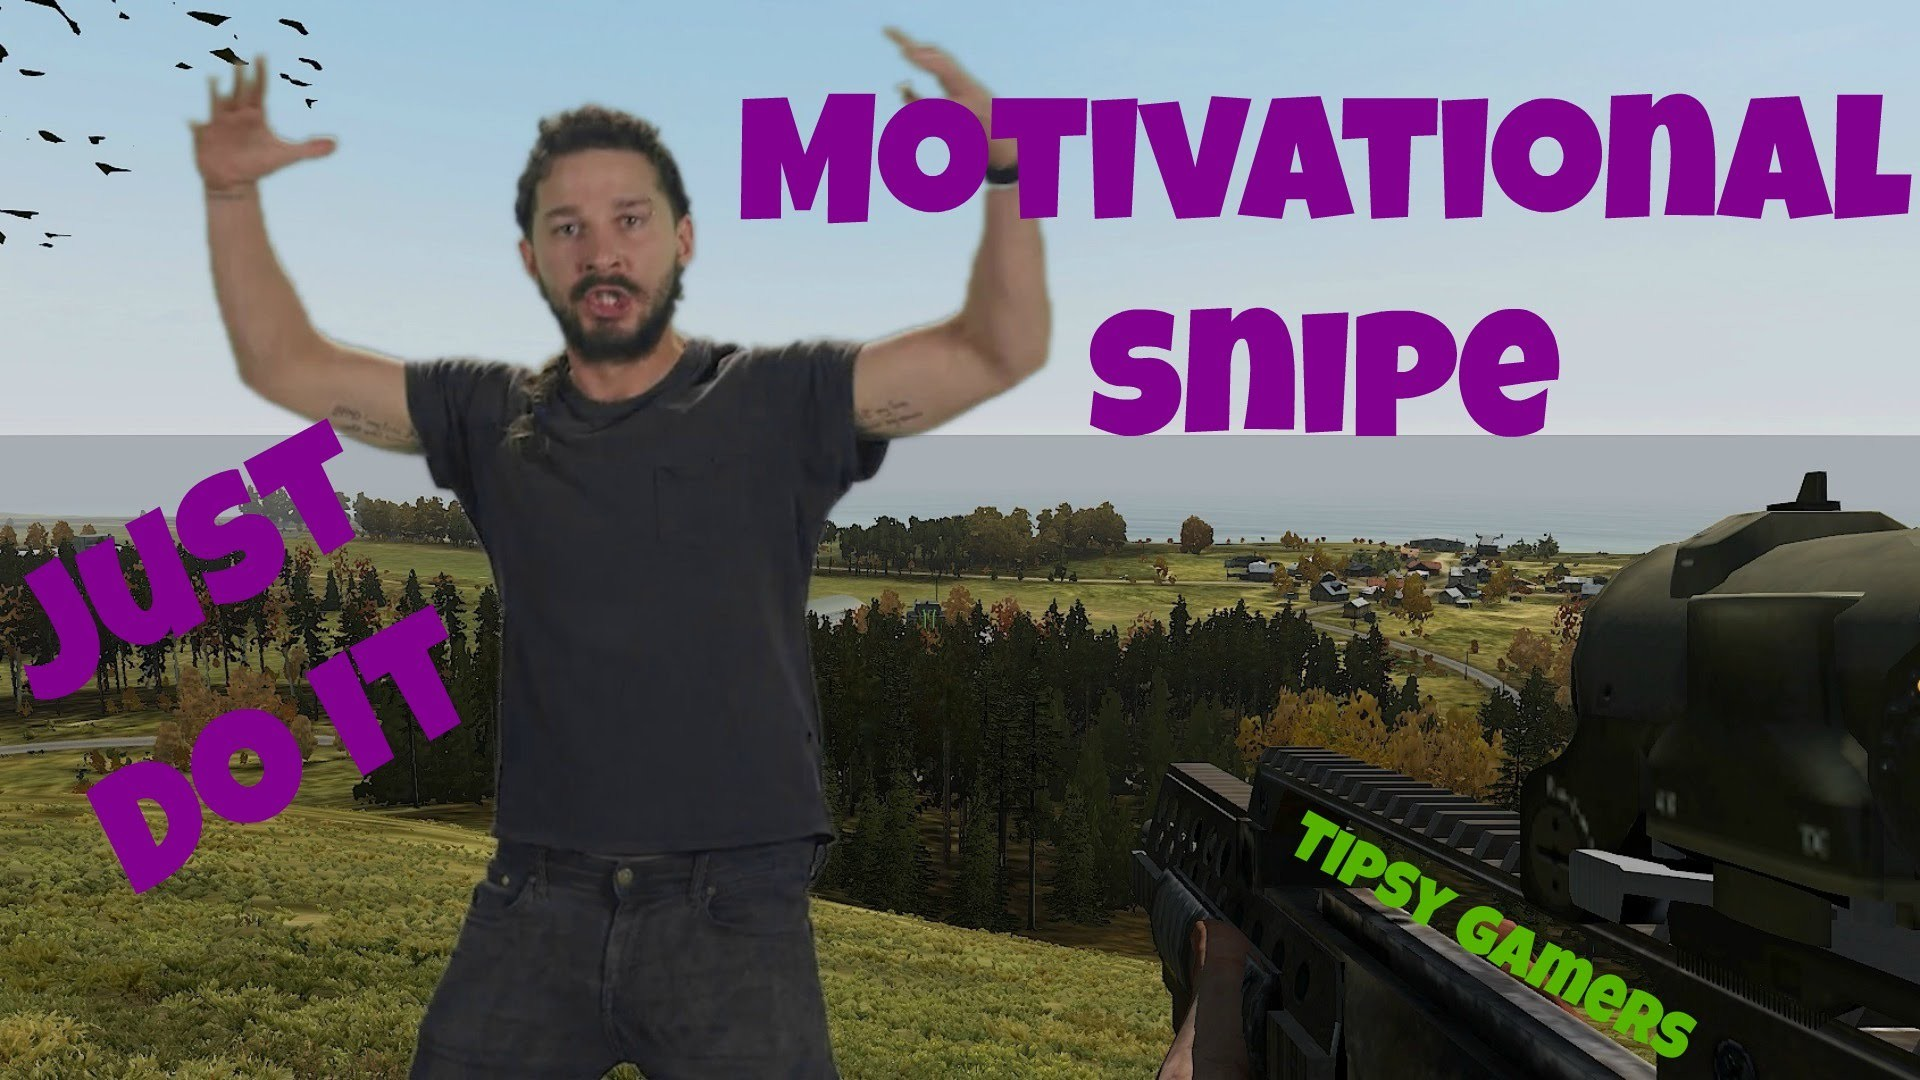 Arma 2 Overpoch – Shia Labeouf Motivational Snipe – Just Do It! – YouTube